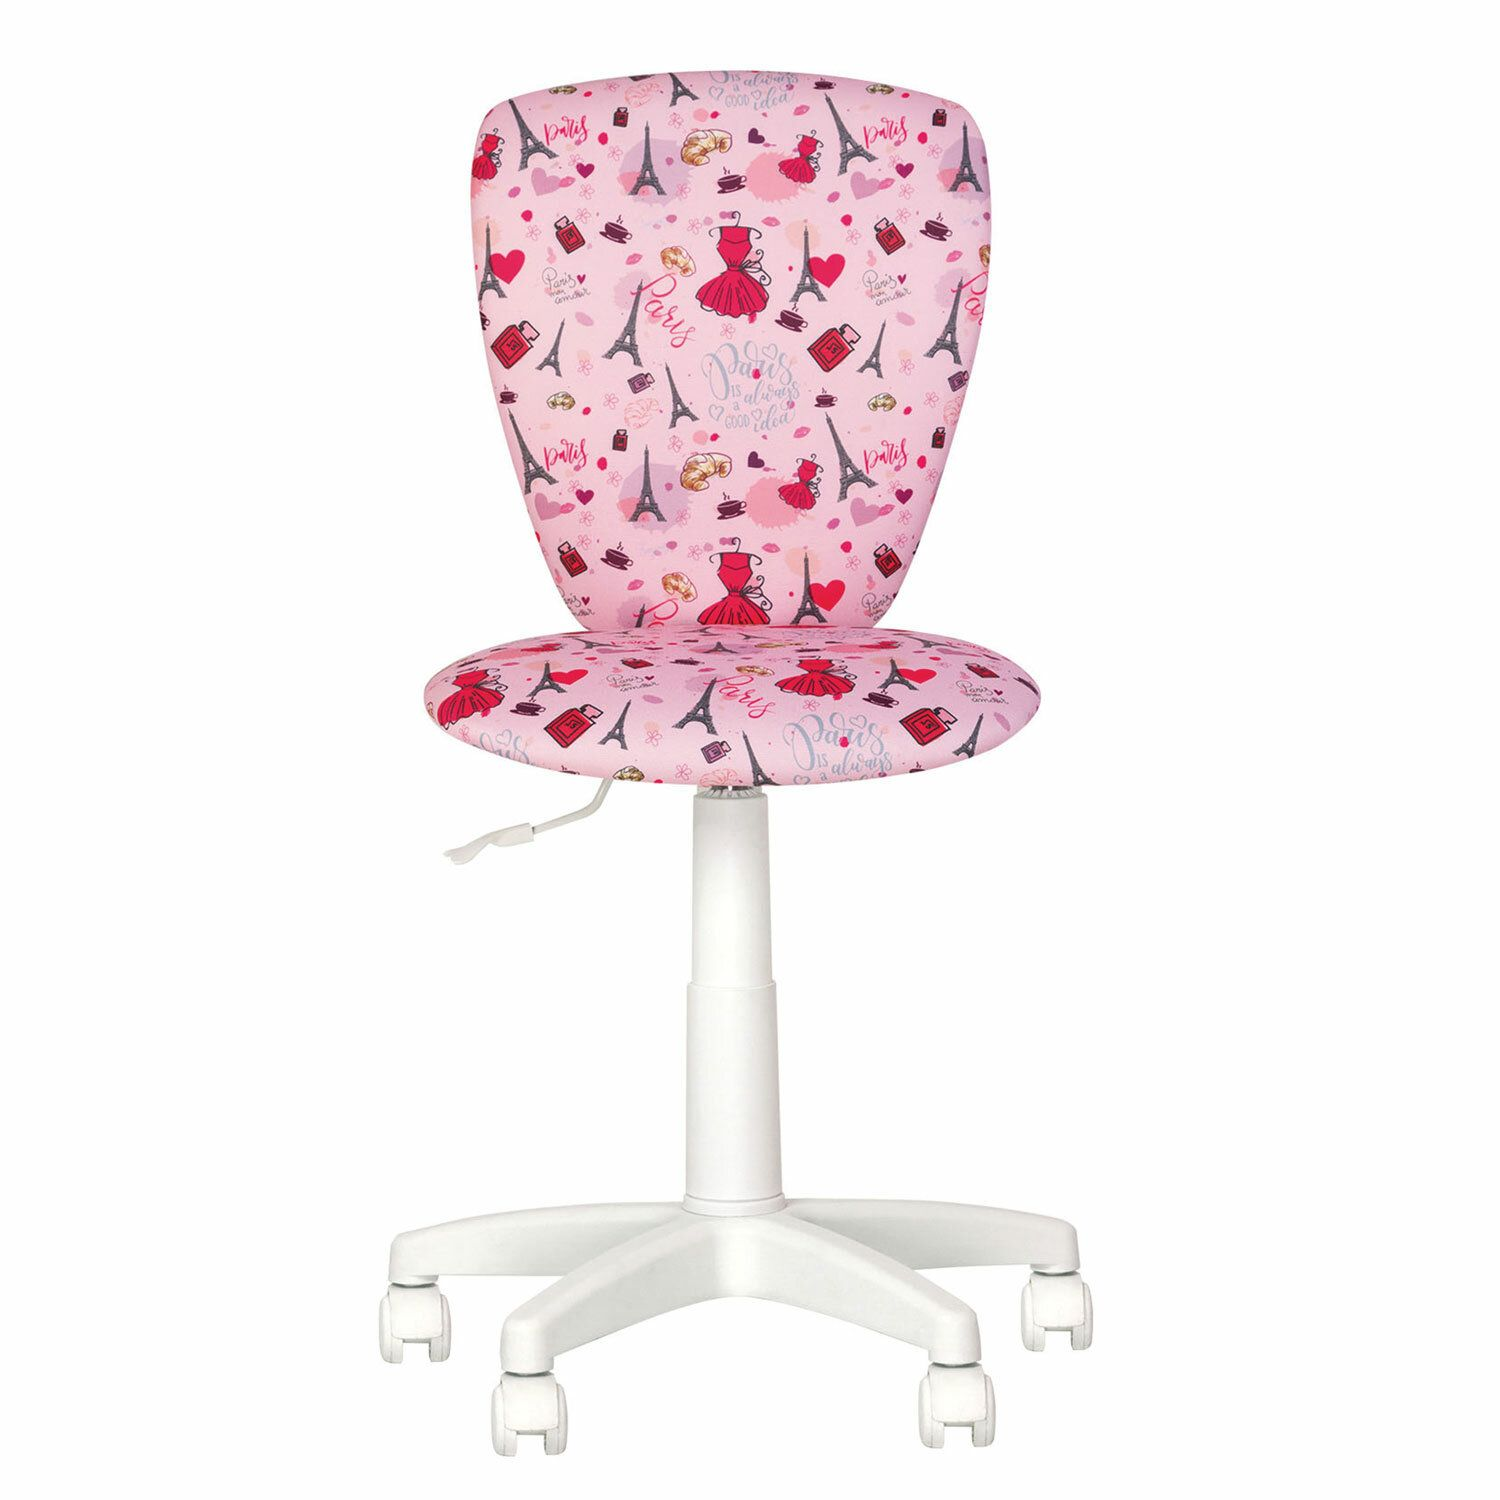 "Children's chair ""POLLY GTS white"" without armrests, pink with a pattern"